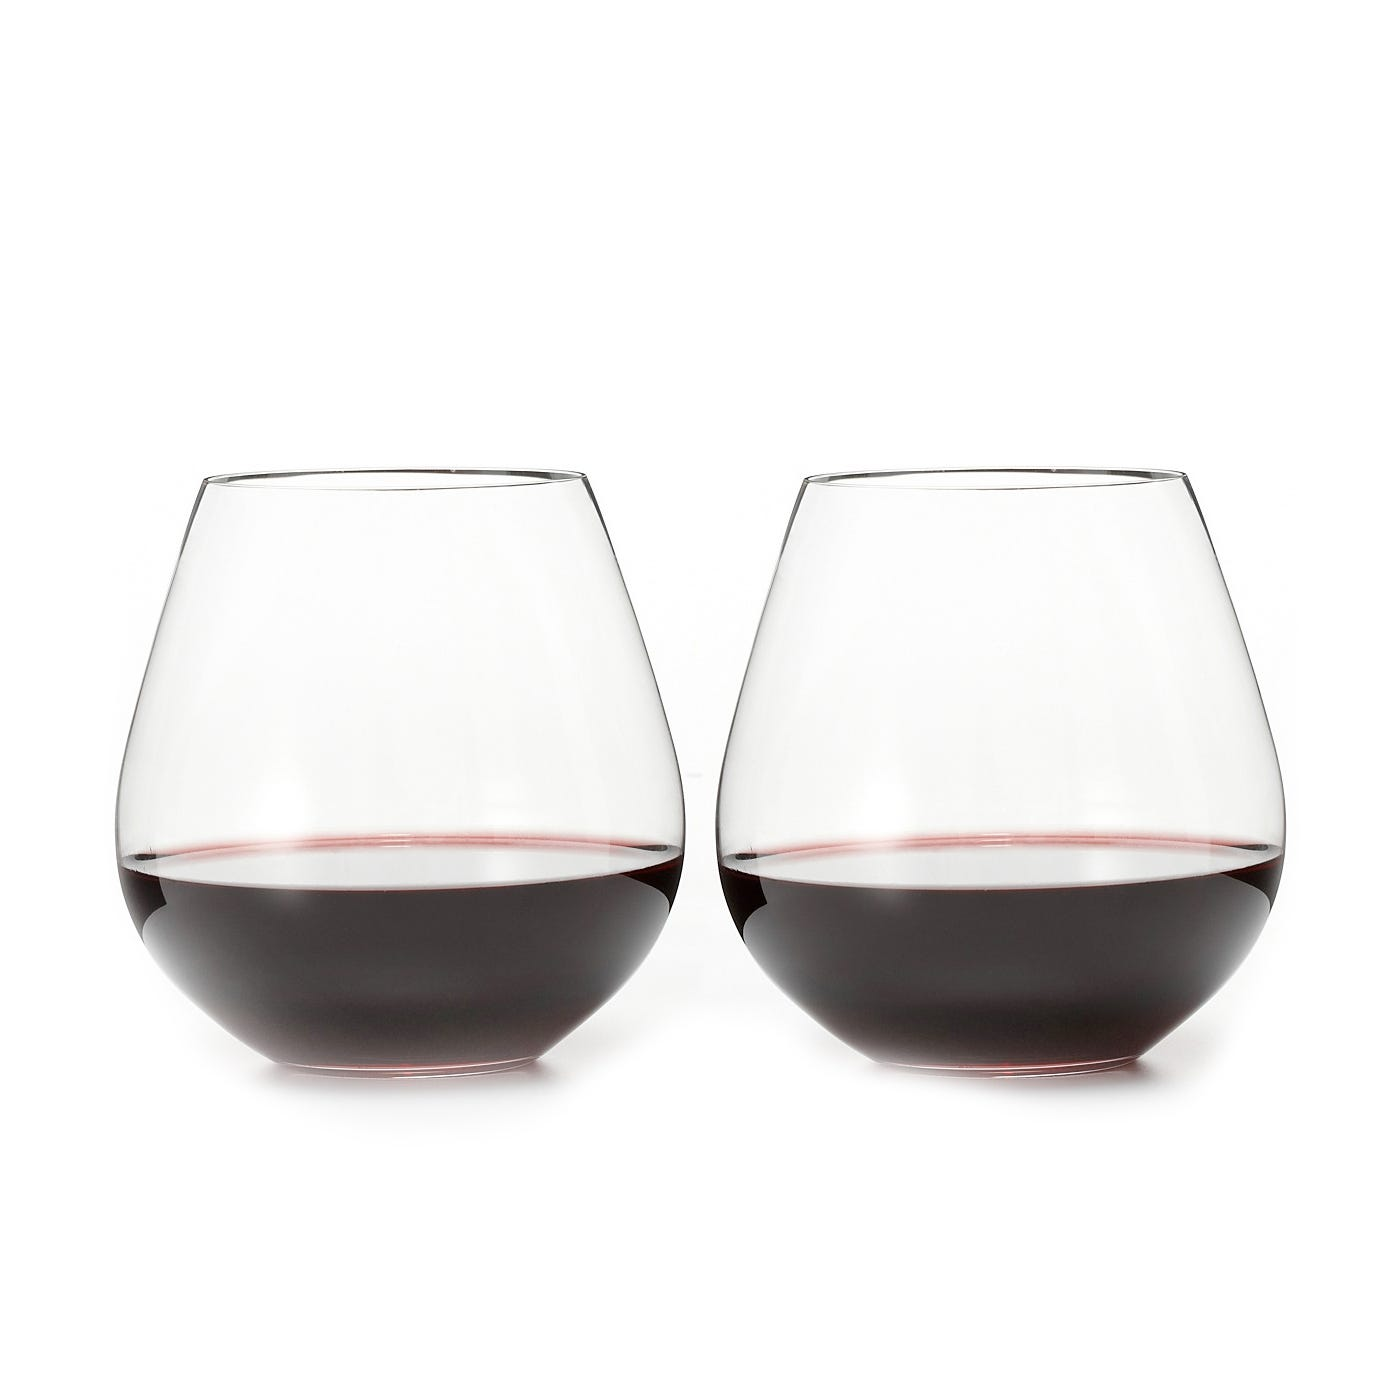 b18d3225d79 O Wine Tumbler Pinot Nebbiolo Set Of 2. byRiedel